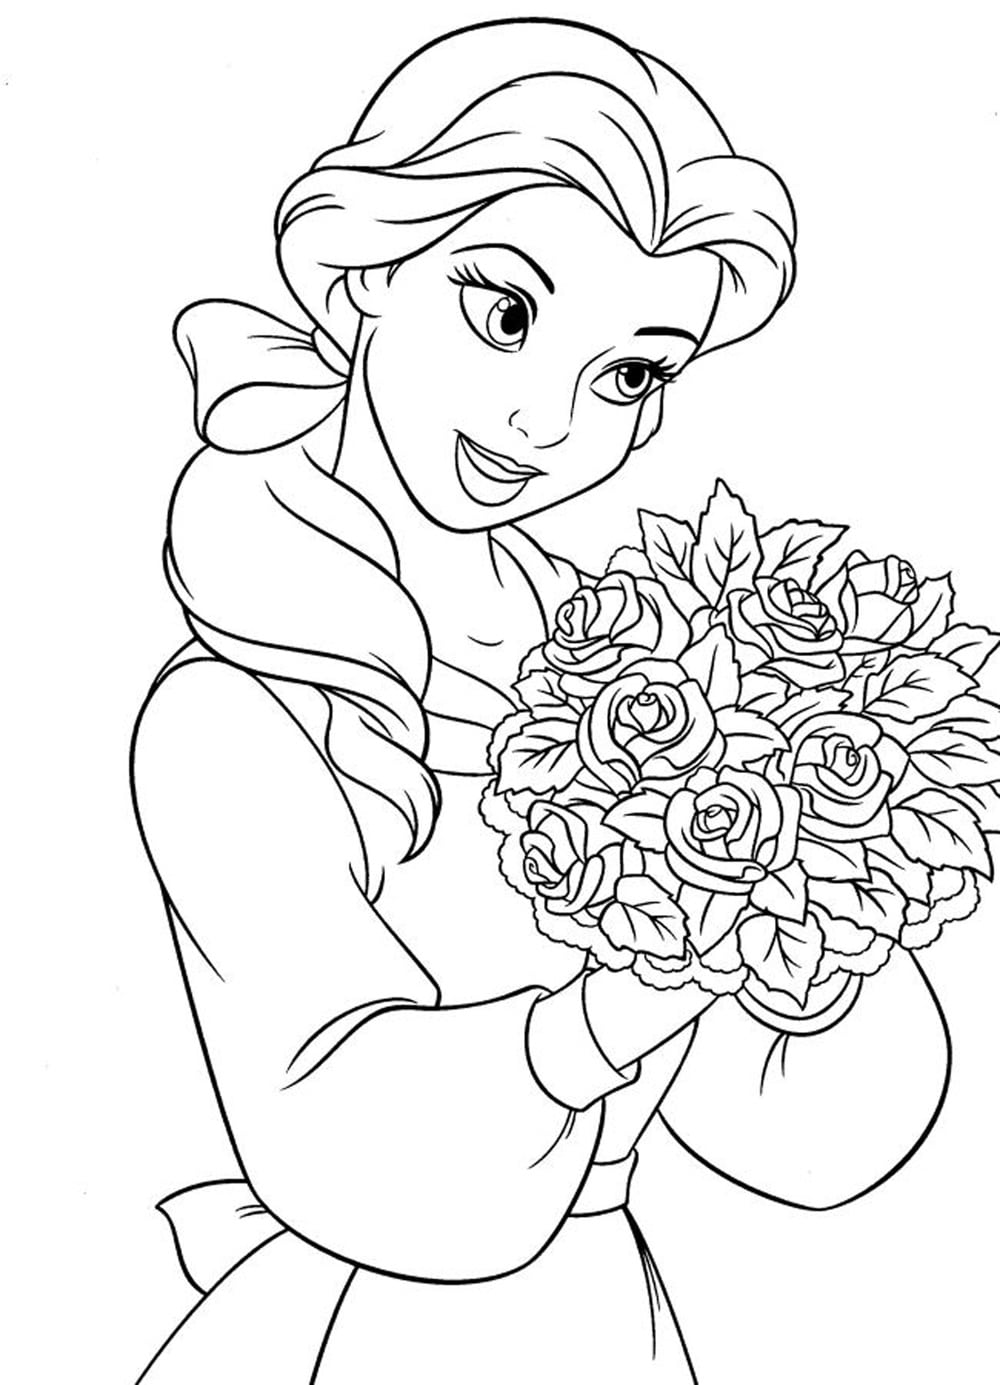 41 Coloring Page For Girls, Hello Kitty Coloring Pages For Girls